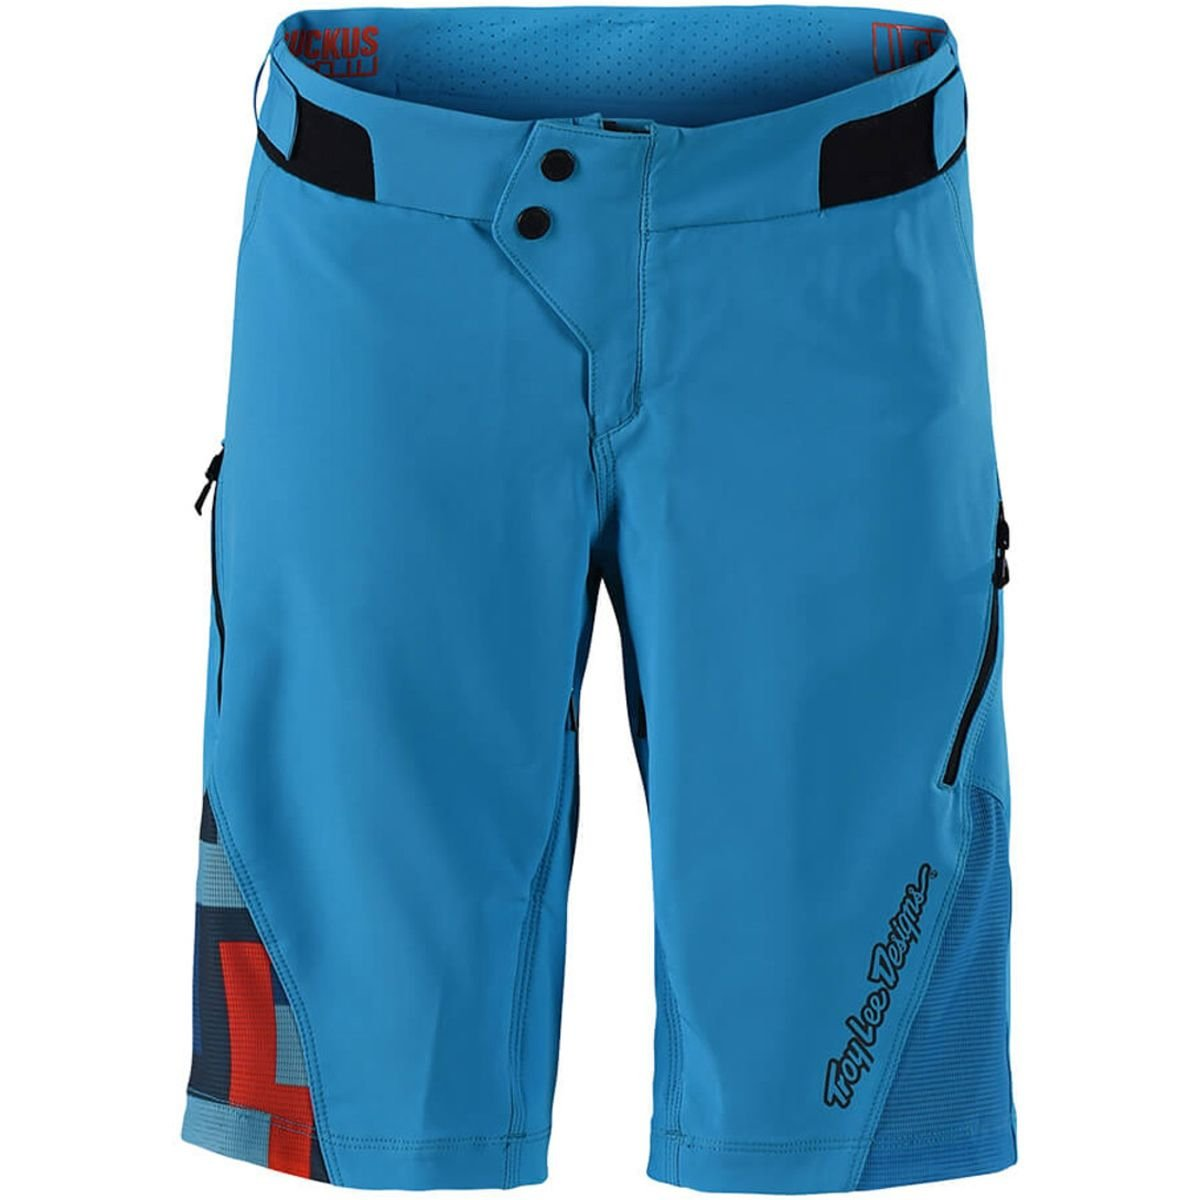 Troy Lee Designs Ruckus Solid Womens Off-Road BMX Cycling Shorts